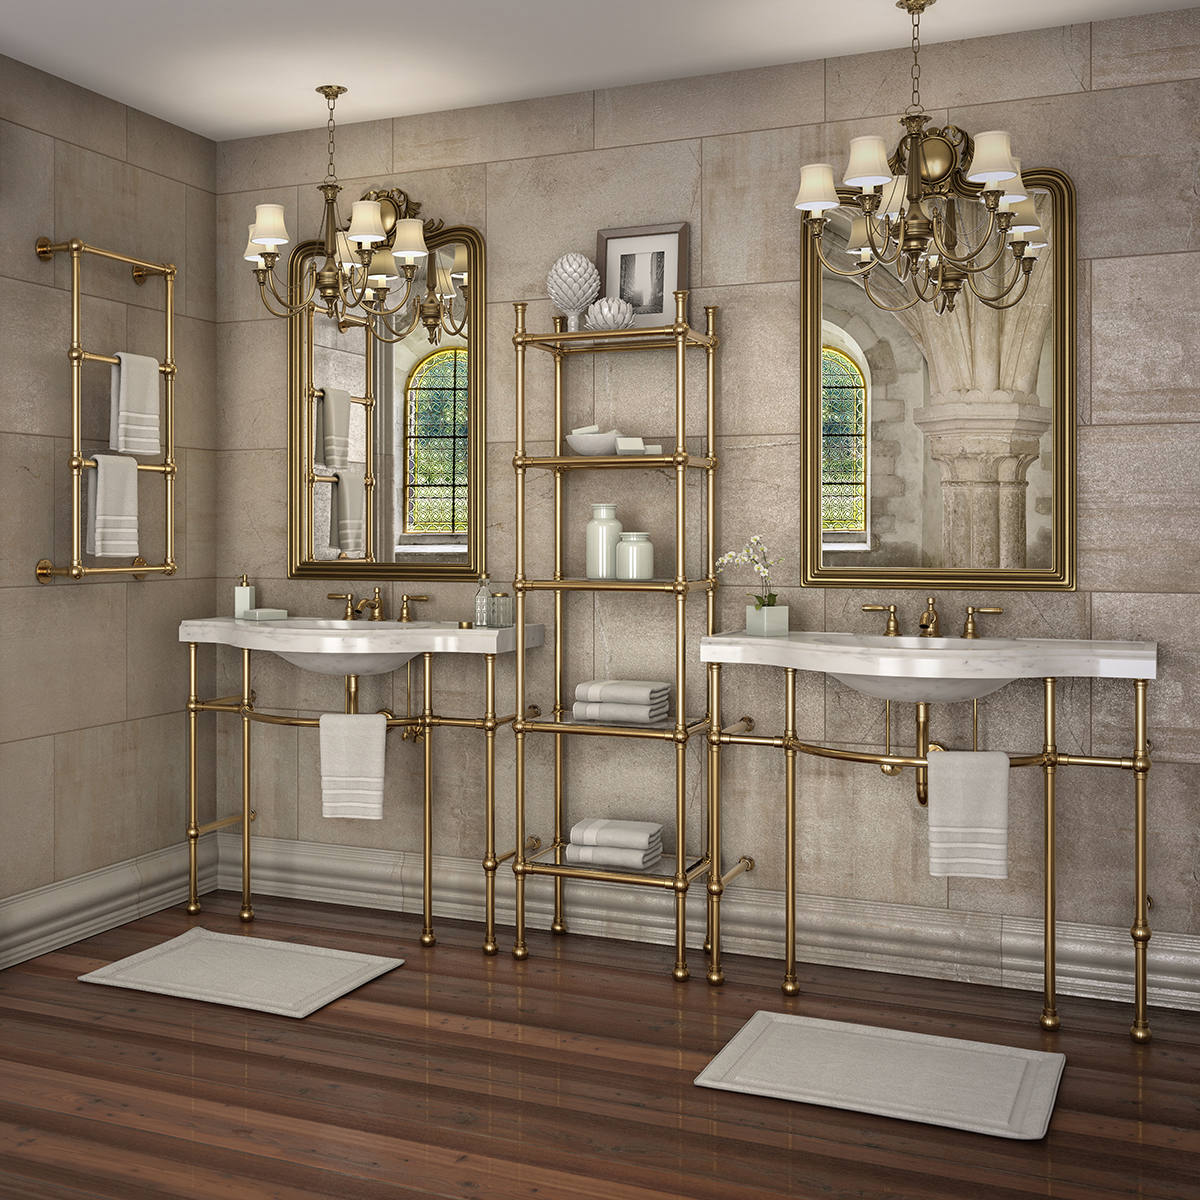 Renaissance Style Vanities With Matching Etagere And Wall Mounted Towel Rack